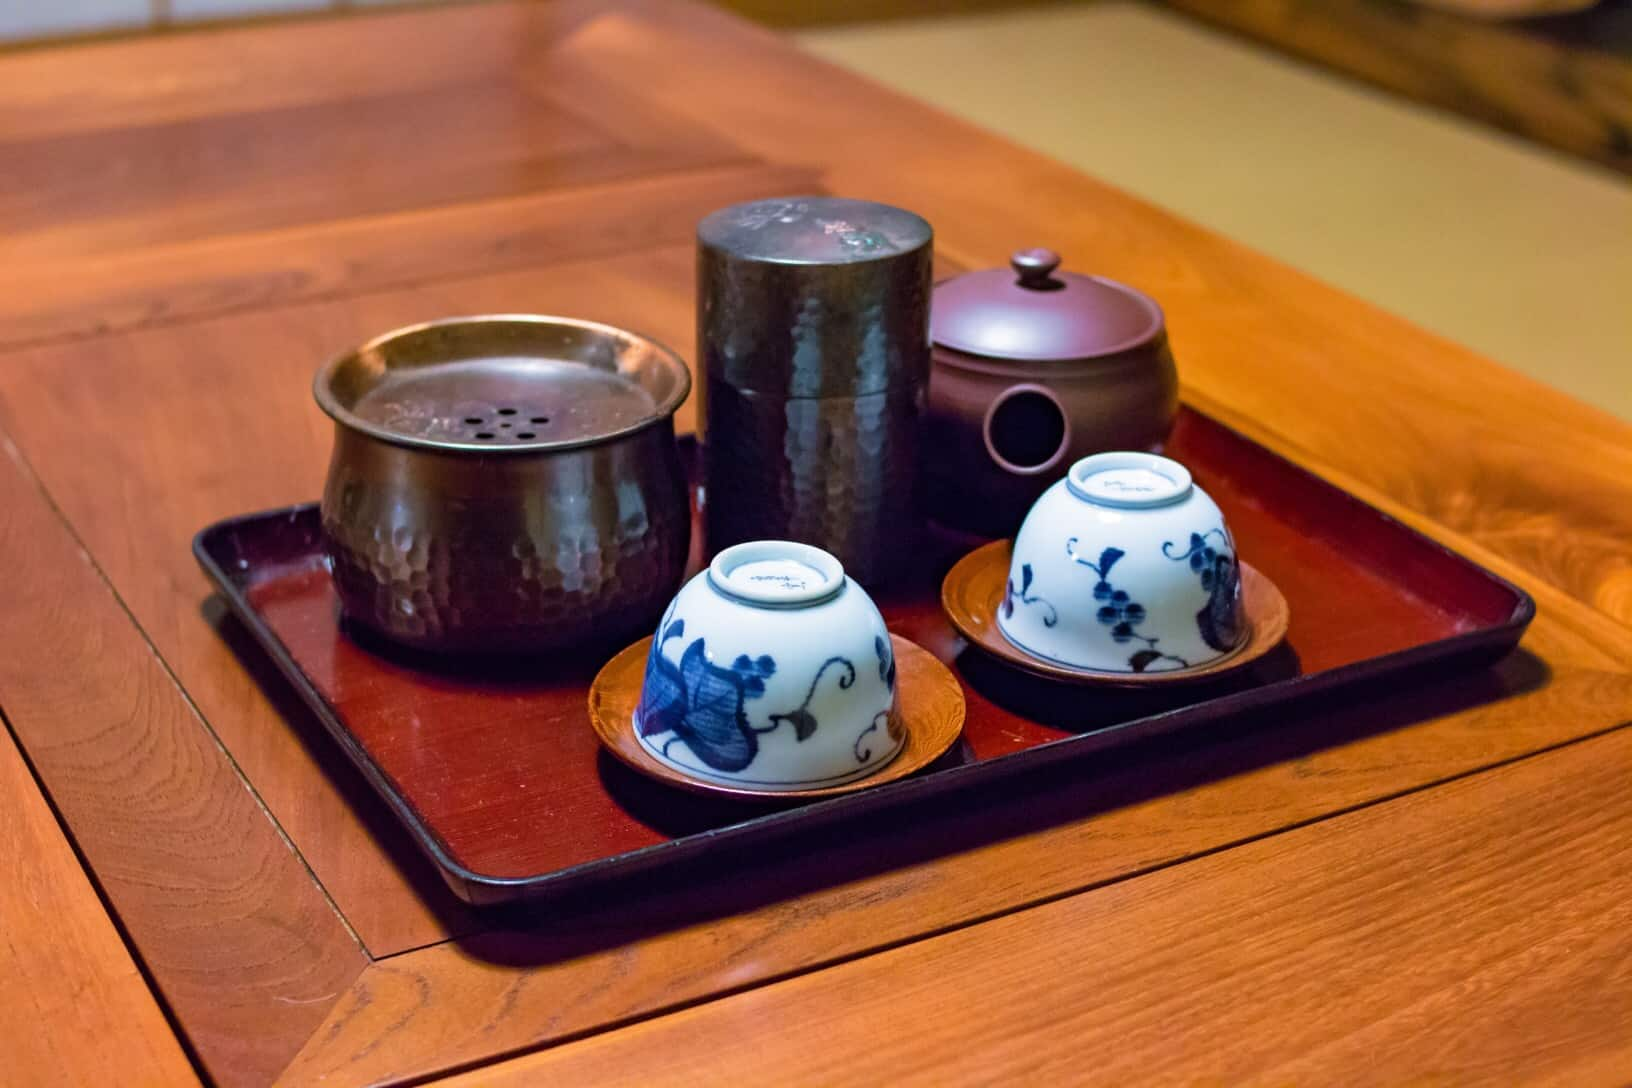 Tea Ceremony Things To Do in Kyoto